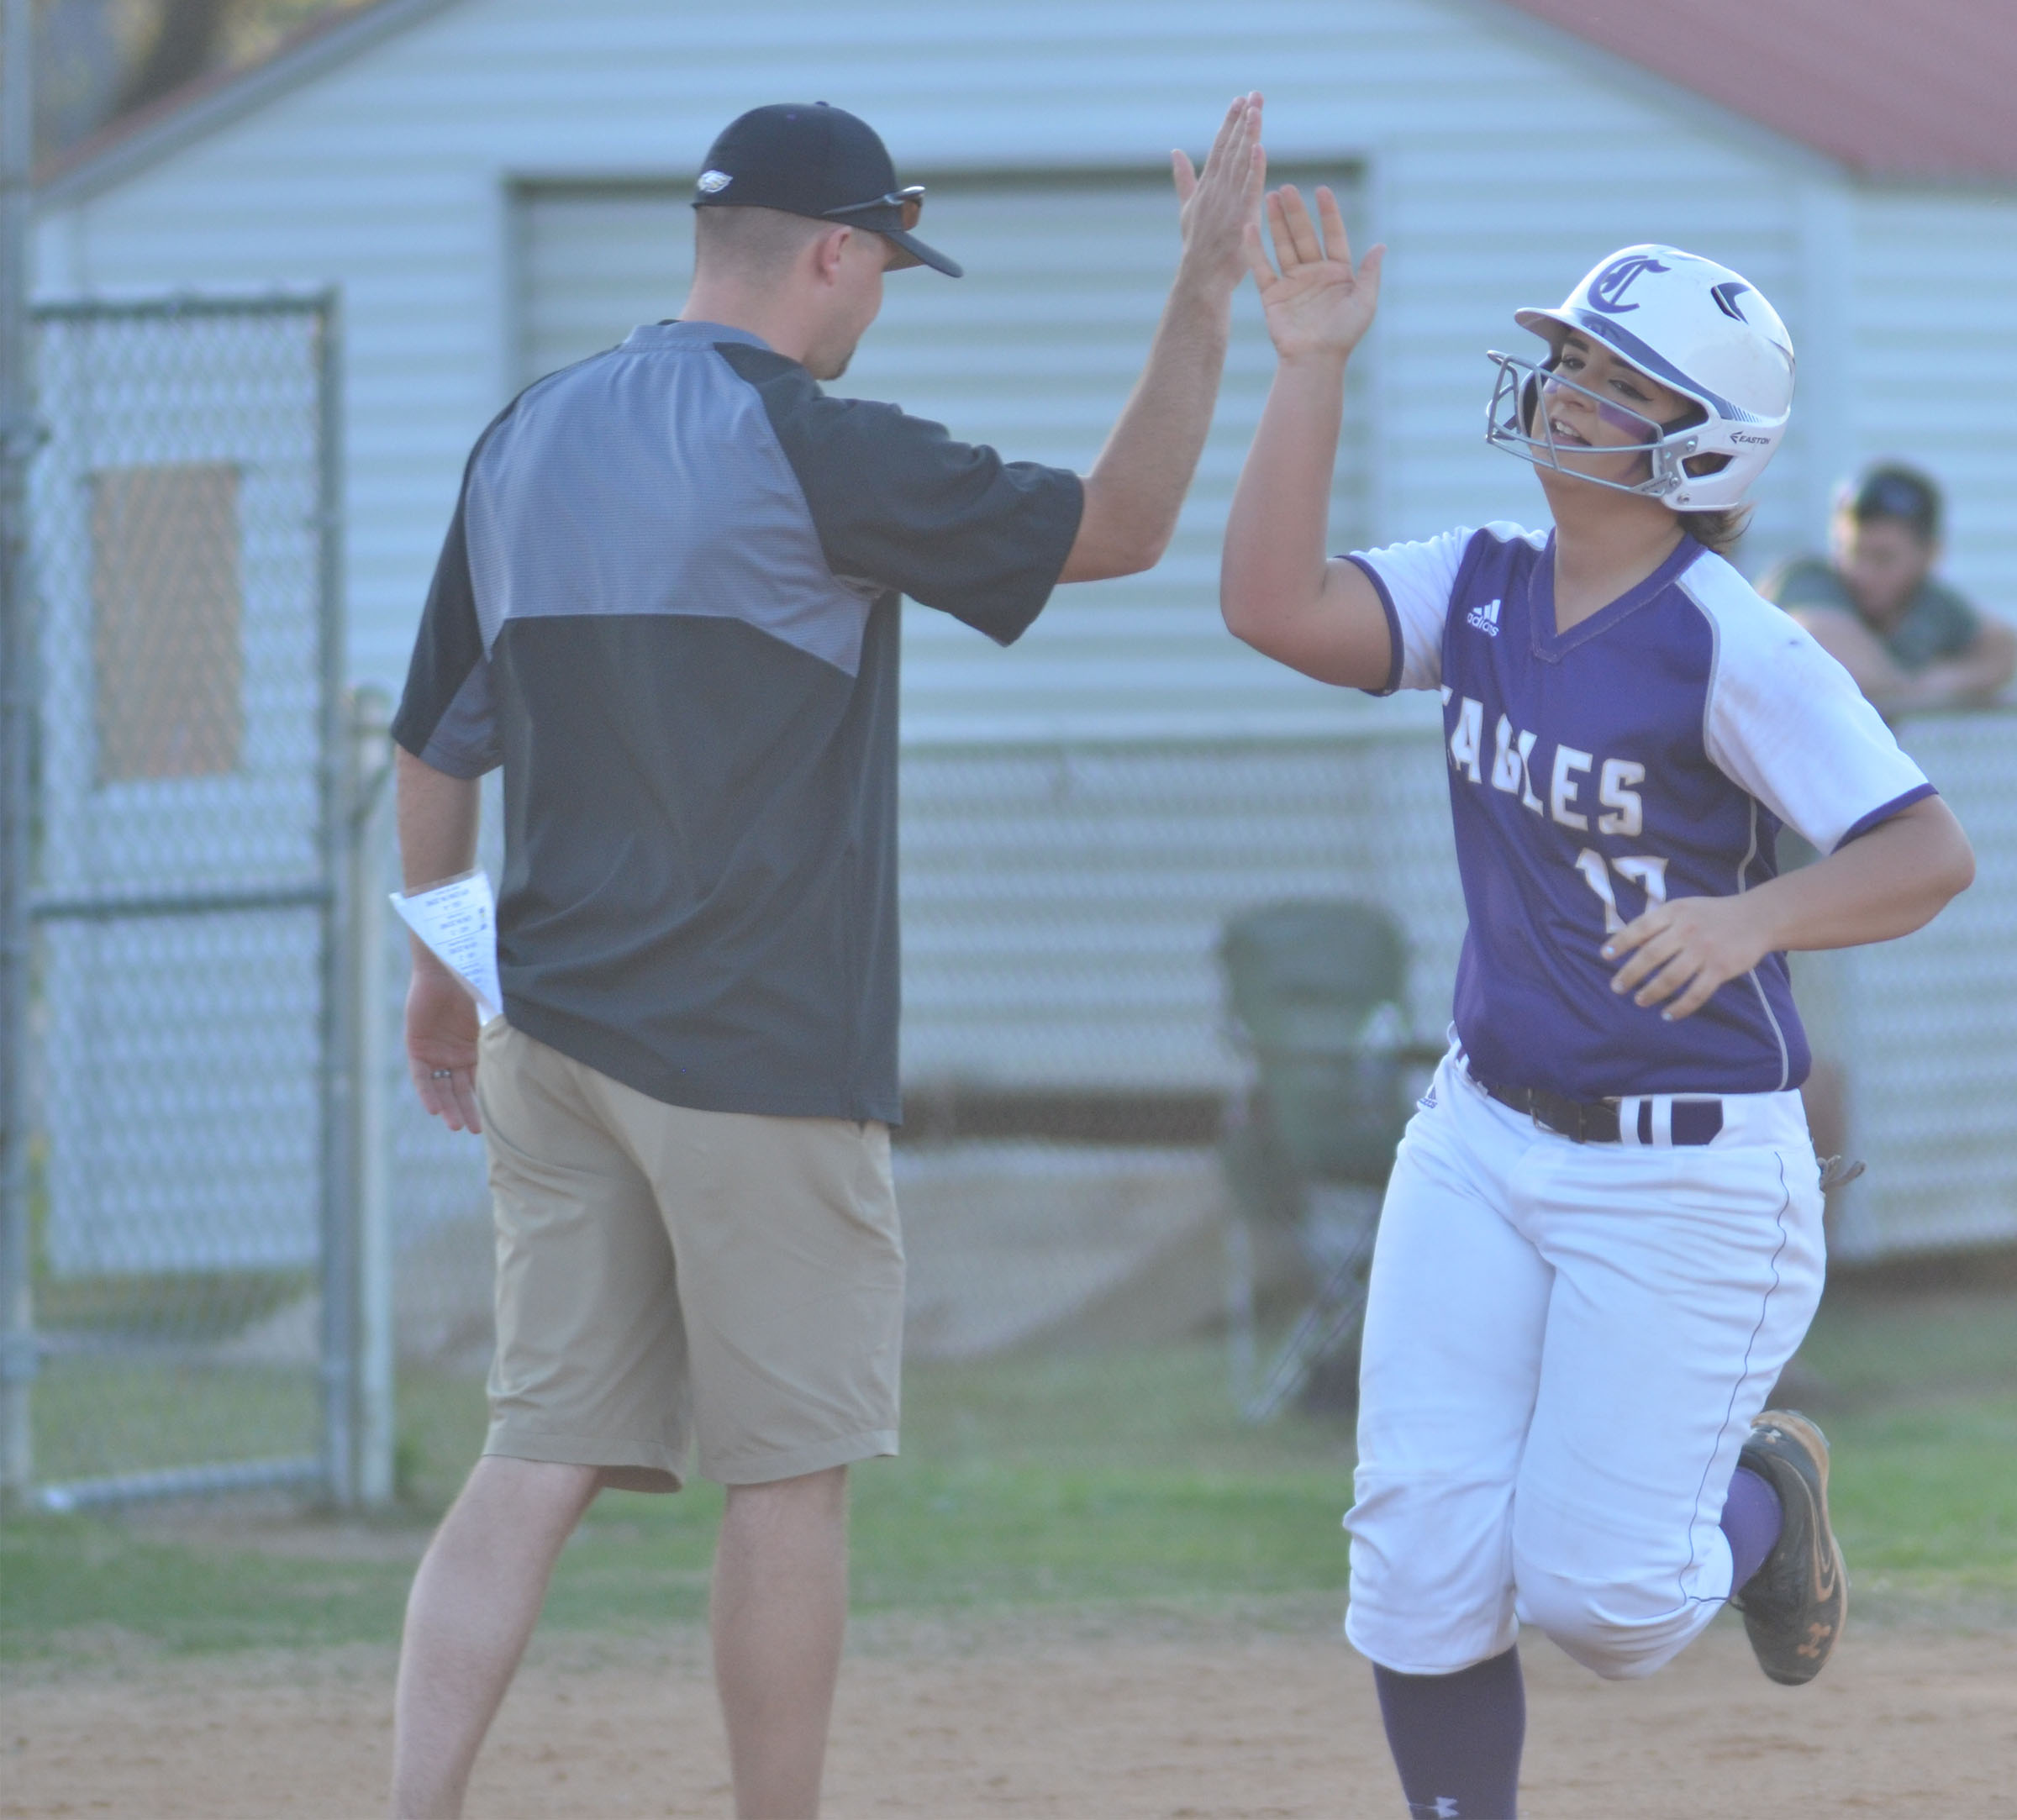 CHS senior Kailey Morris high-fives coach Weston Jones after hitting a three-run homerun.